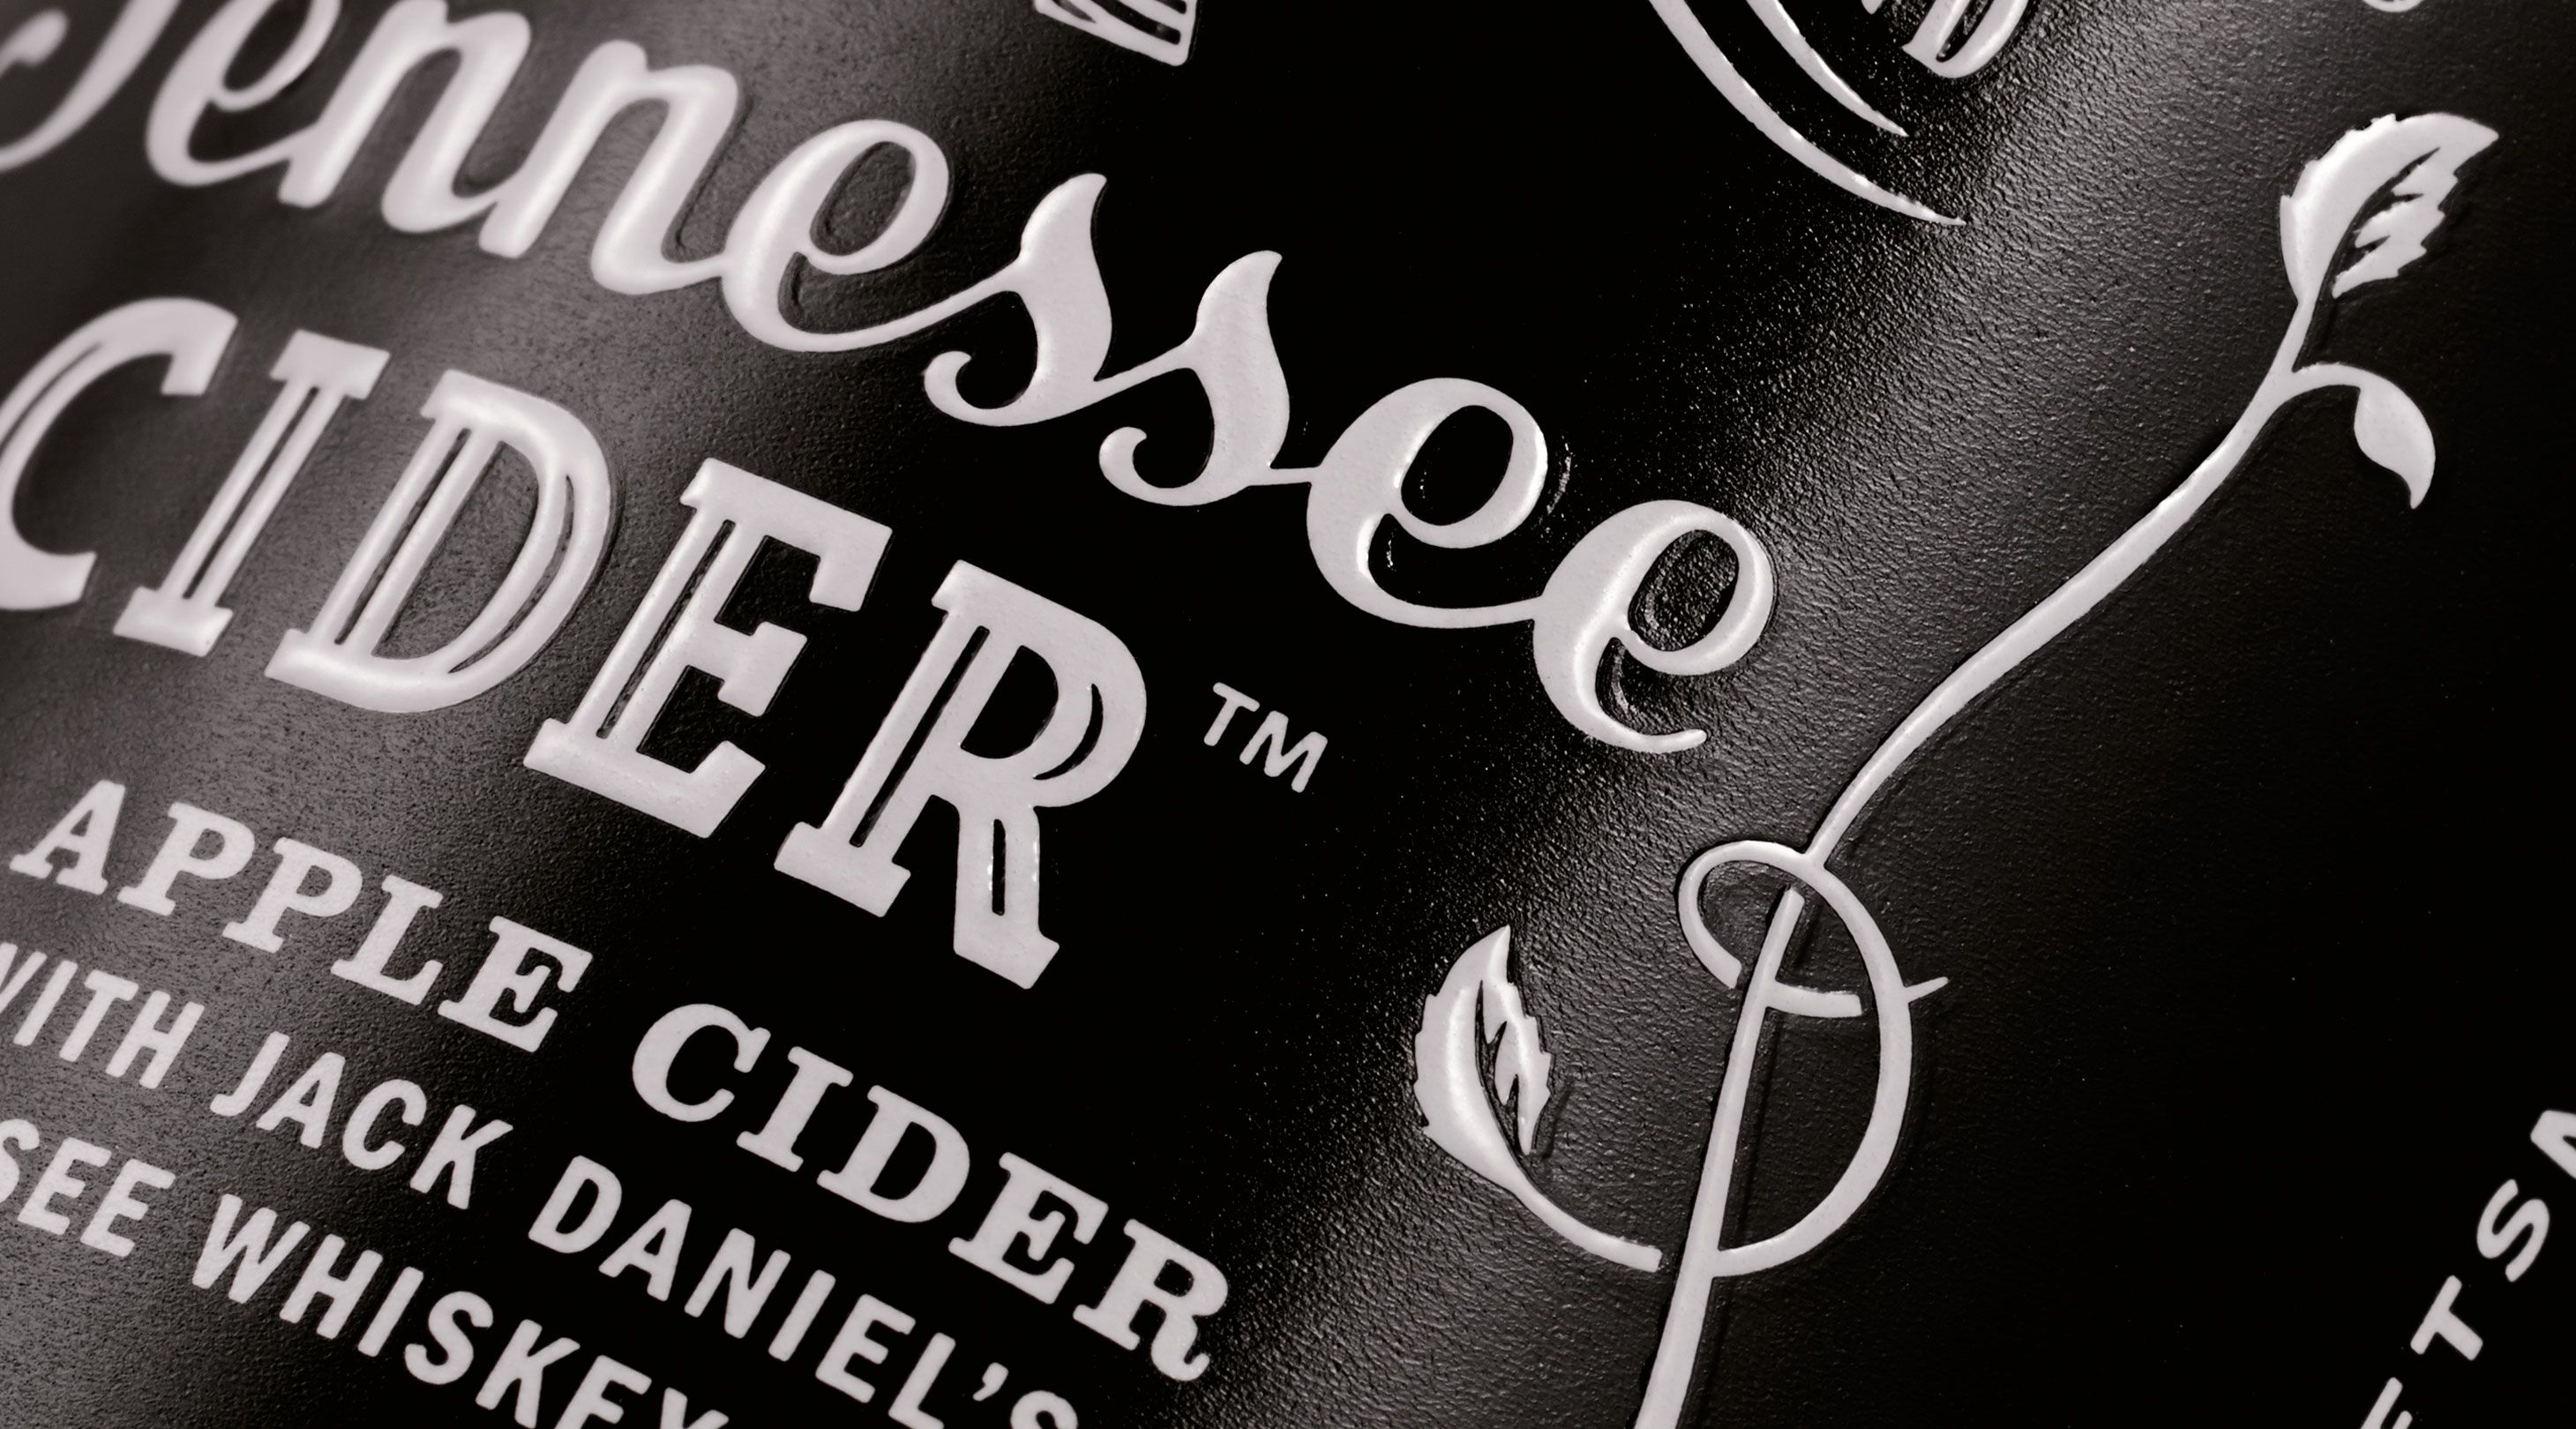 Jack Daniel's / Design / Branding / Tennessee Cider / Cider / Hard Cider / Apple / Whiskey / Old No.7 / Emboss / White Foil /  Black & White